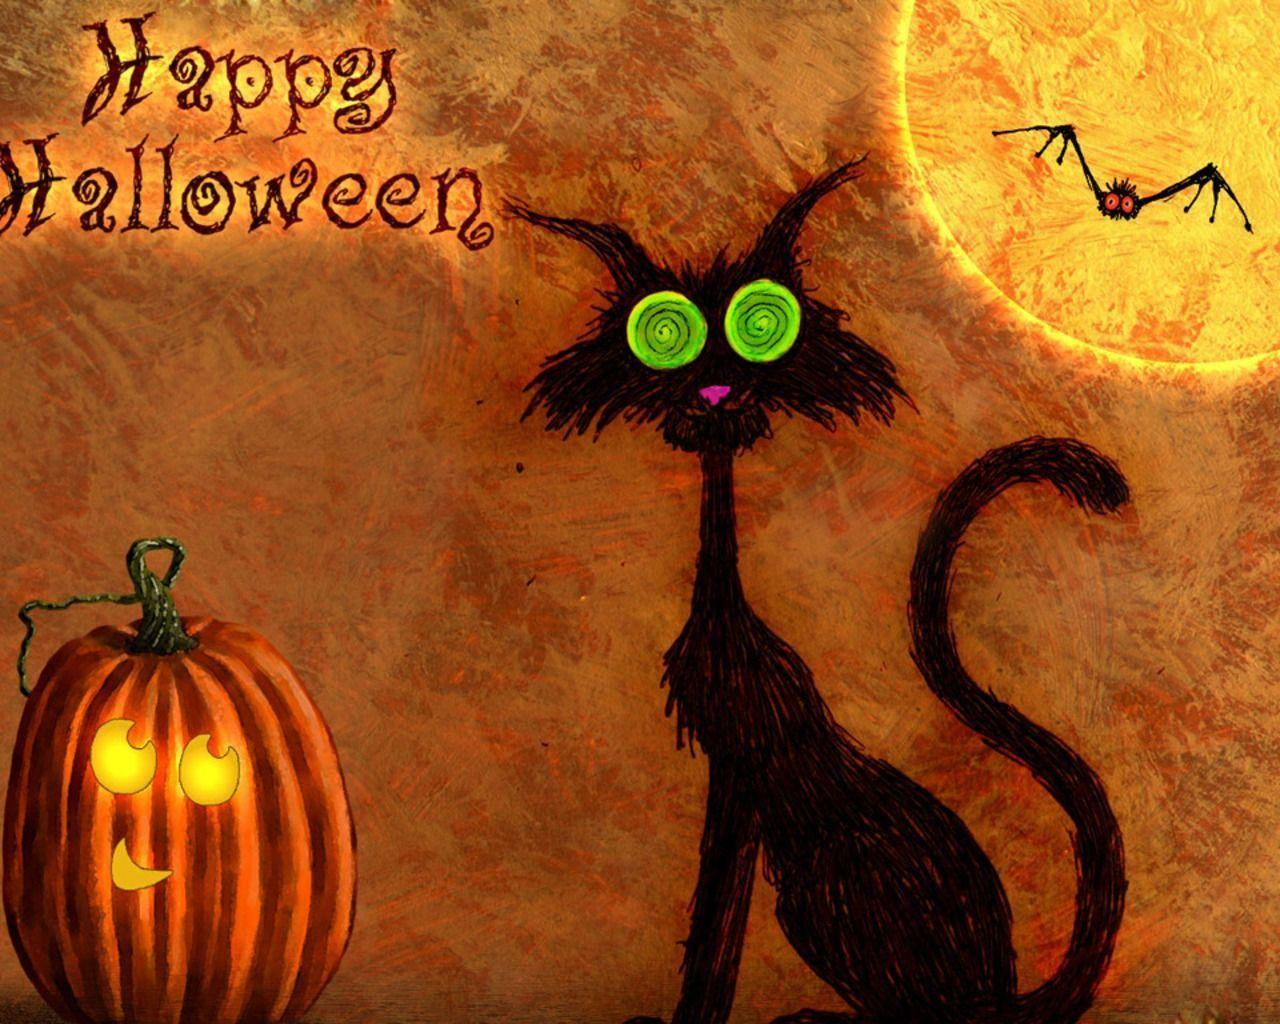 Most Inspiring Wallpaper Halloween Screensaver - aOeFZU2  Collection_501382.jpg